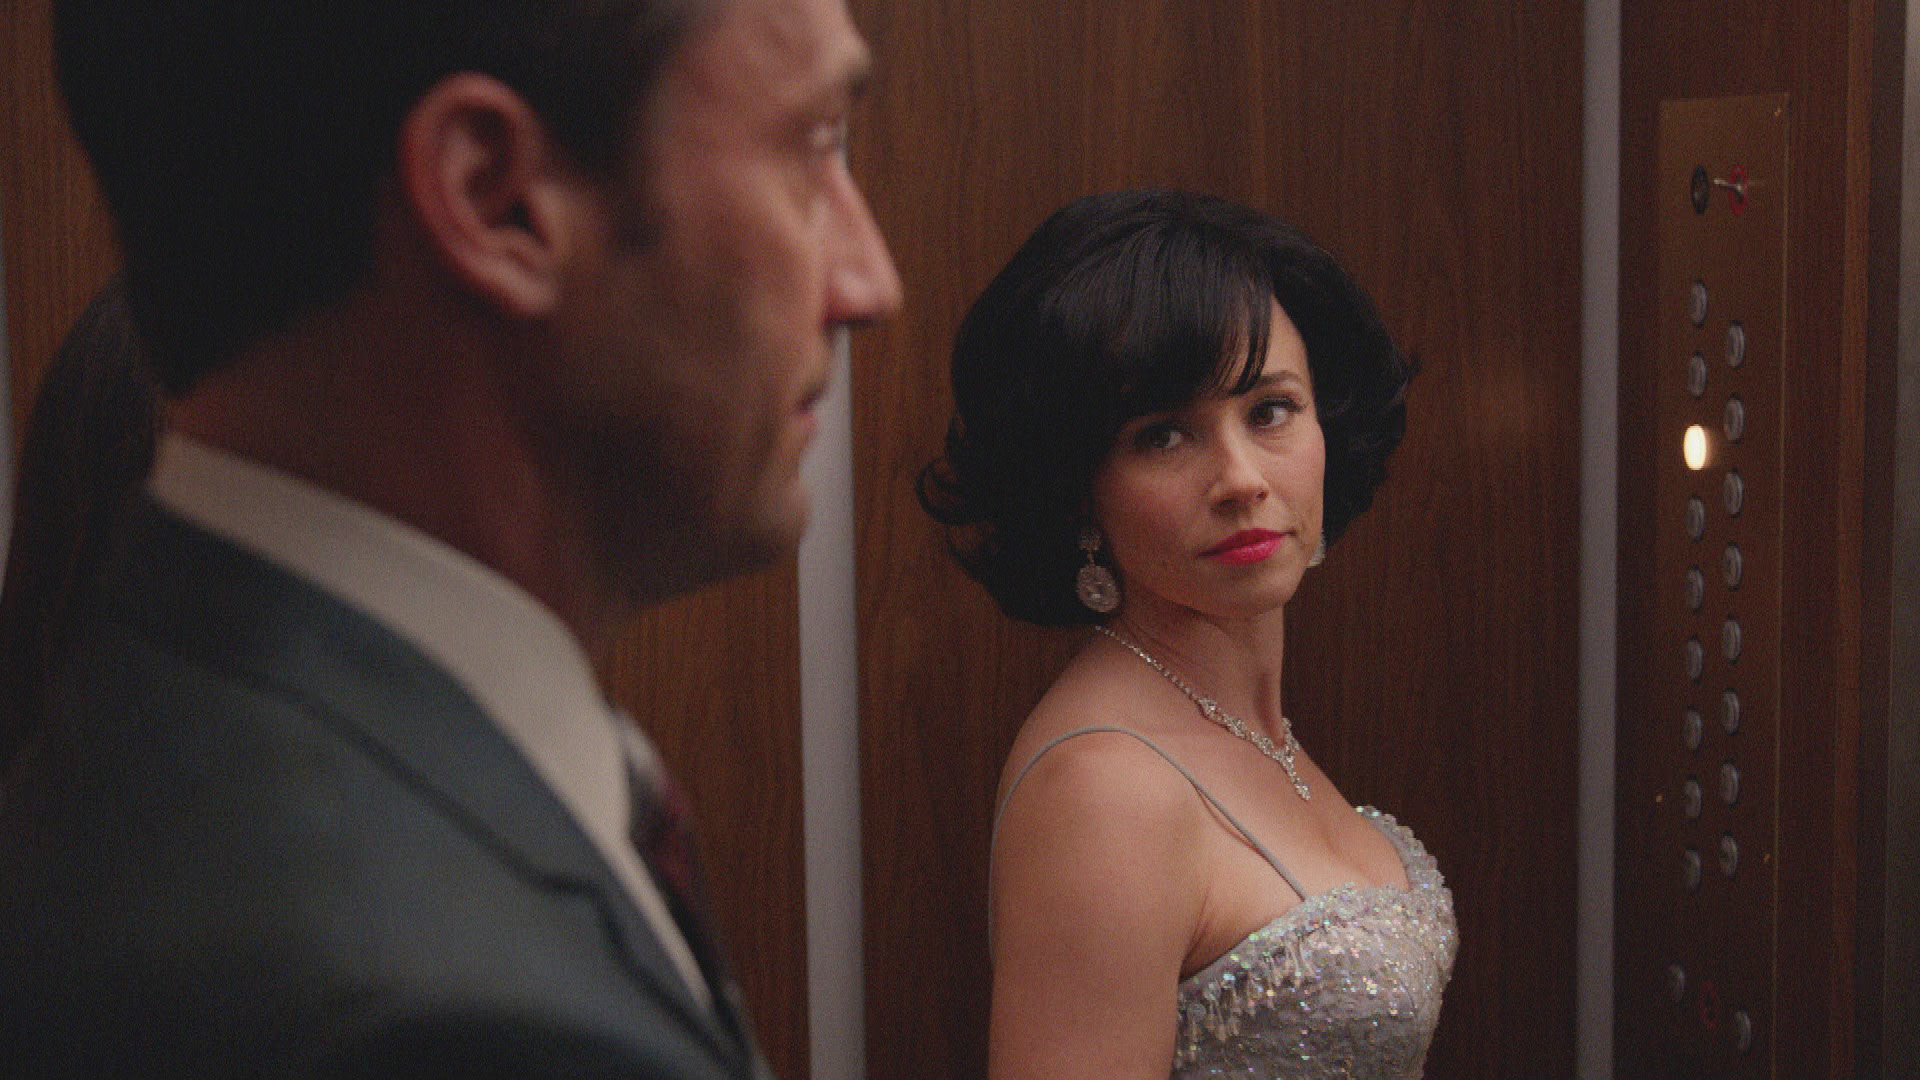 Jon Hamm as Don Draper and Linda Cardellini as Sylvia Rosen on  Mad Men,  Season 7B, Episode 9.